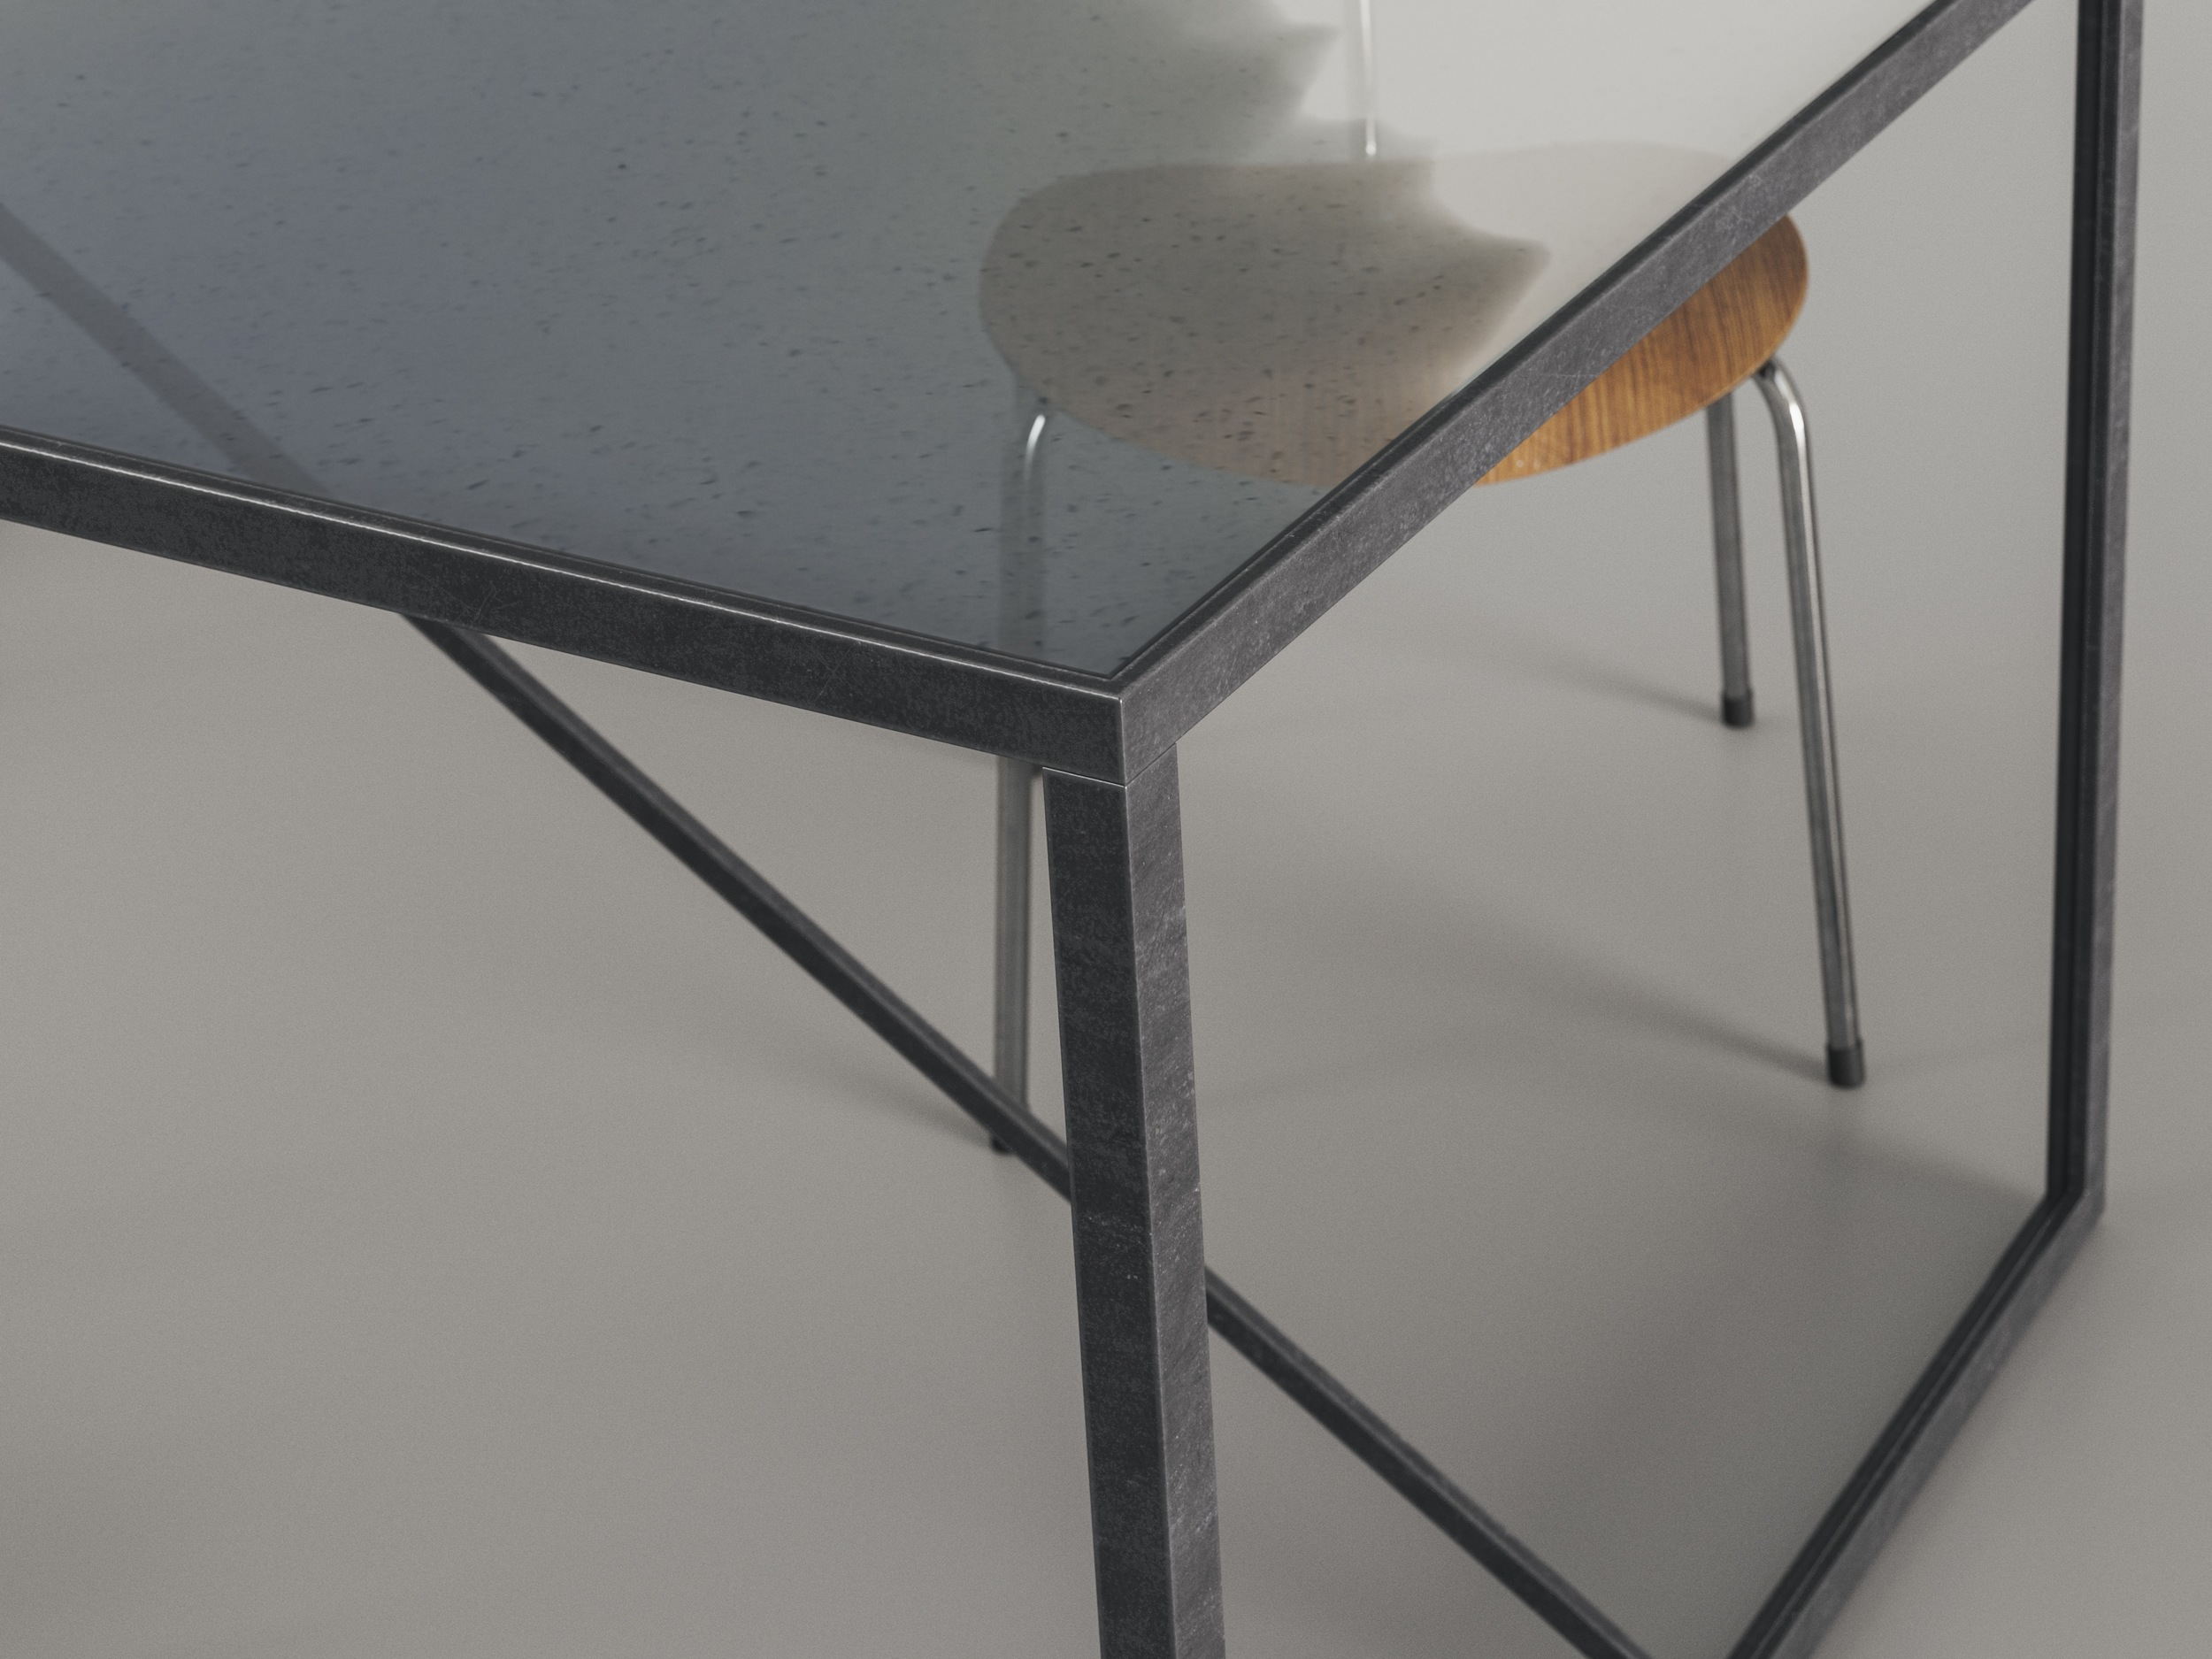 Angled View of Table by Birmingham Glass